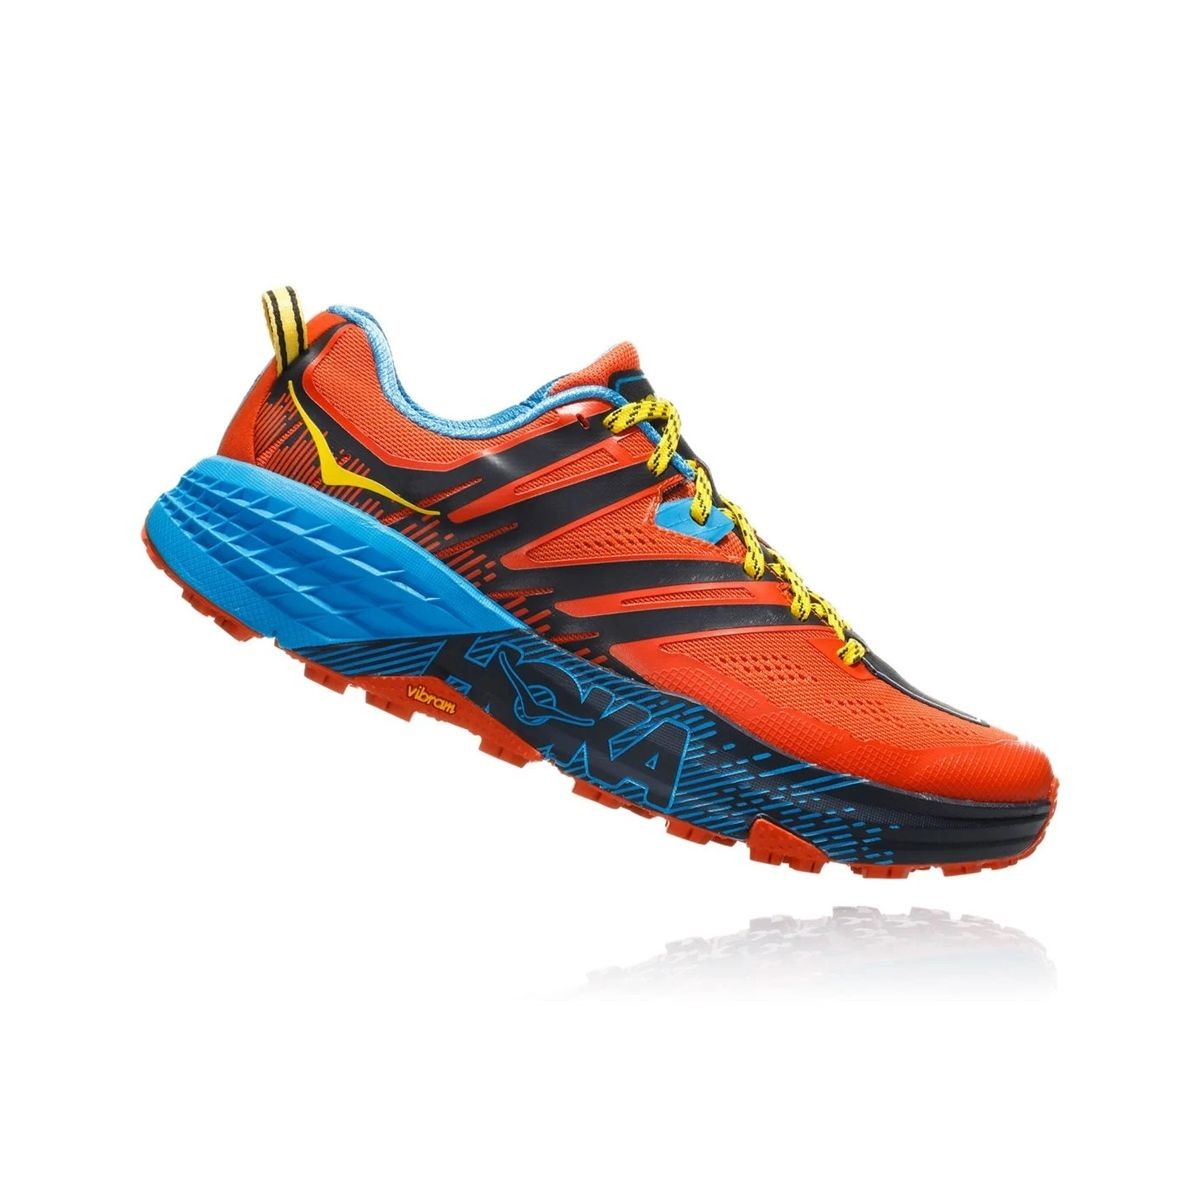 HOKA - TRAIL SPEEDGOAT 3 - MEN